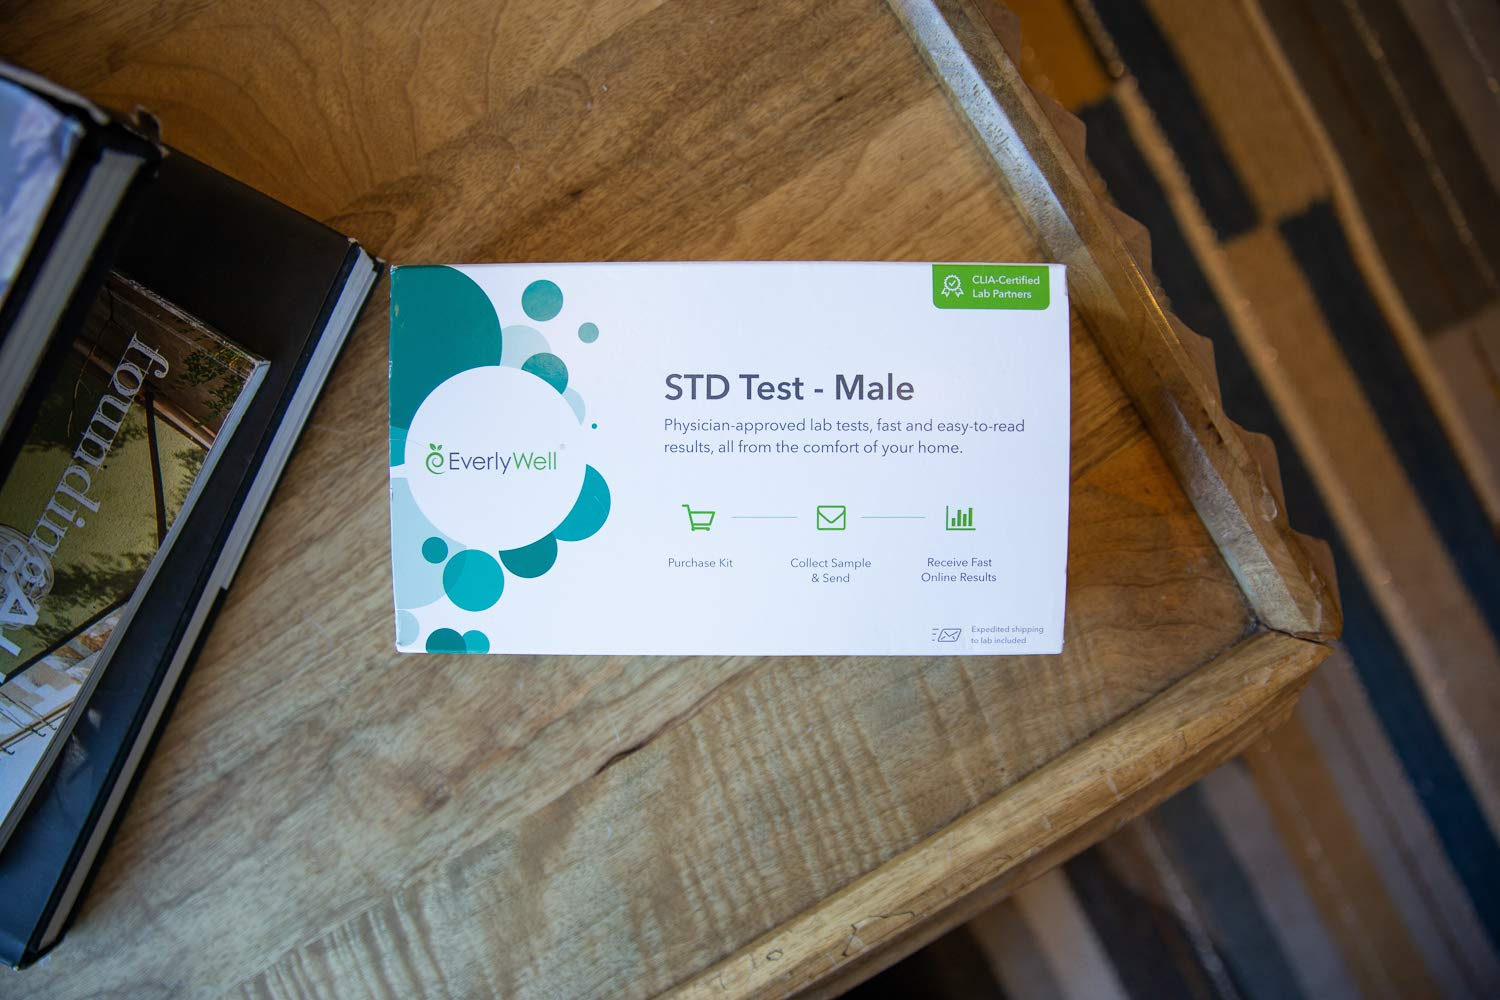 EverlyWell - Male at-Home STD Test - Discreetly Test for 7 Common STDs (Not Available in RI, NJ, NY, and MD) by Everly Well (Image #3)